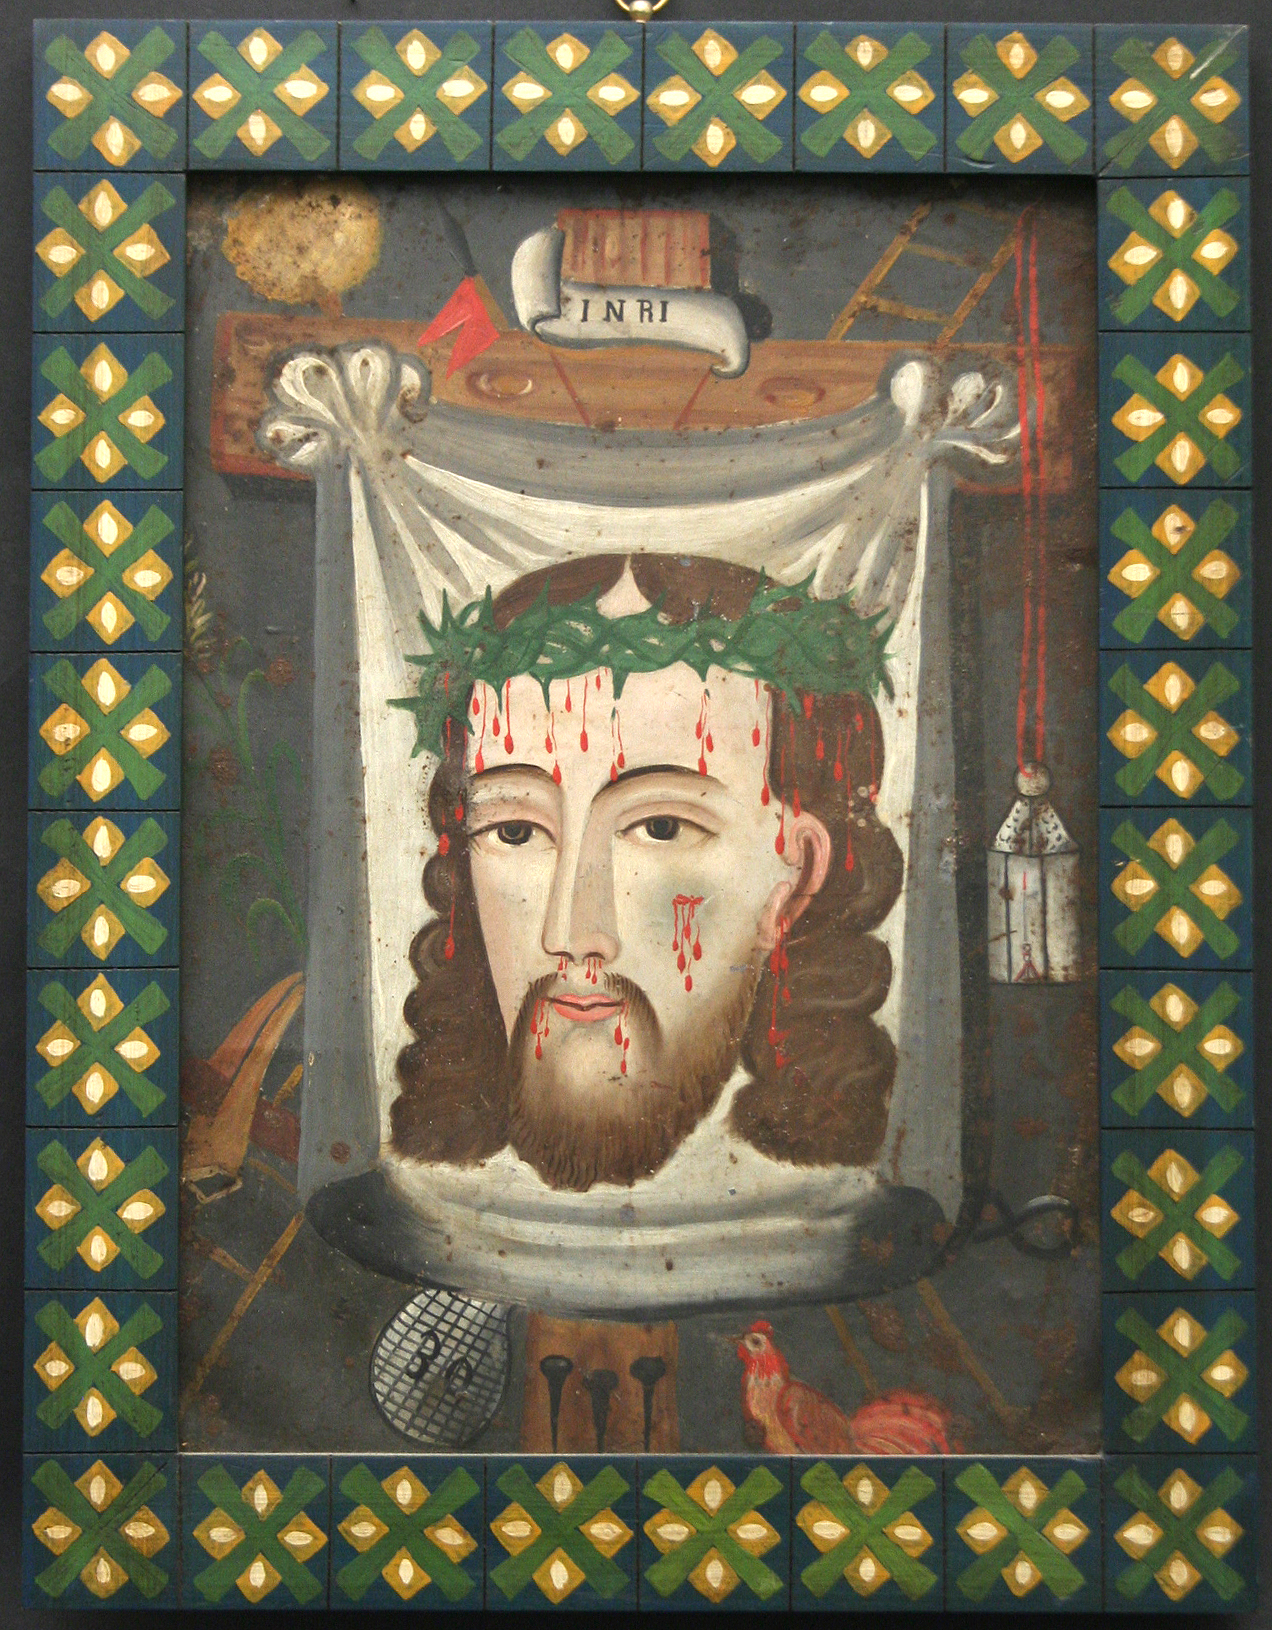 Man's face with long brown hair and beard. Wears a crown of thorns and has blood dripping from his forehead, cheek, nose, and mouth. The face is on a sheet and the sheet is hanging on a wooden cross. The cross is surrounded by holy objects related to the Crucifixion of Jesus Christ.